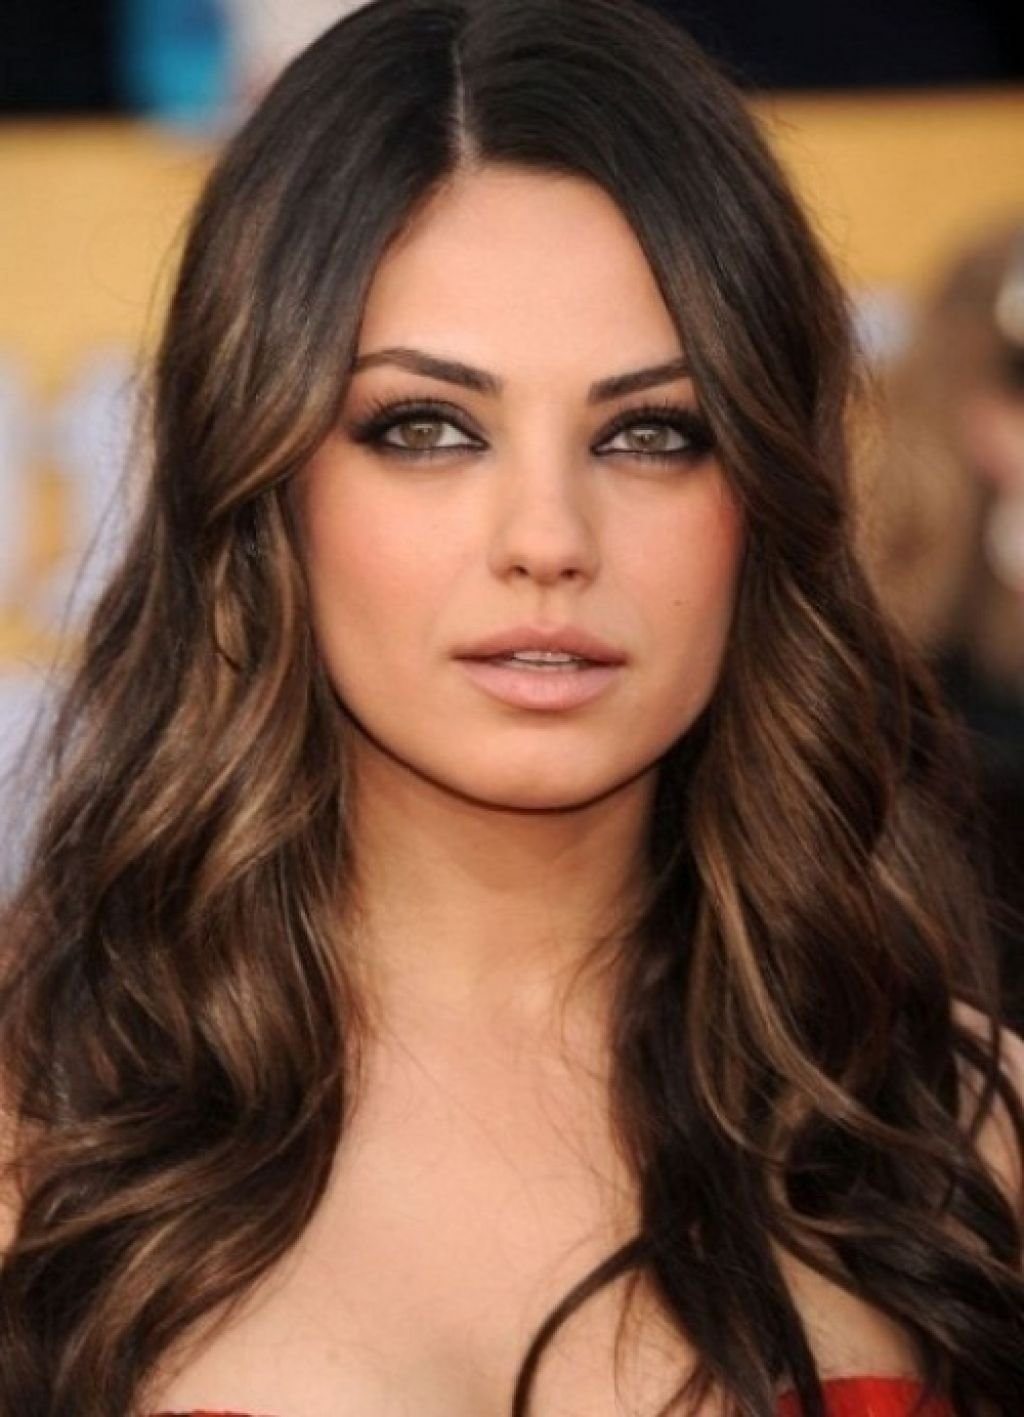 hair colors for tan skin and brown eyes - best hair color for summer